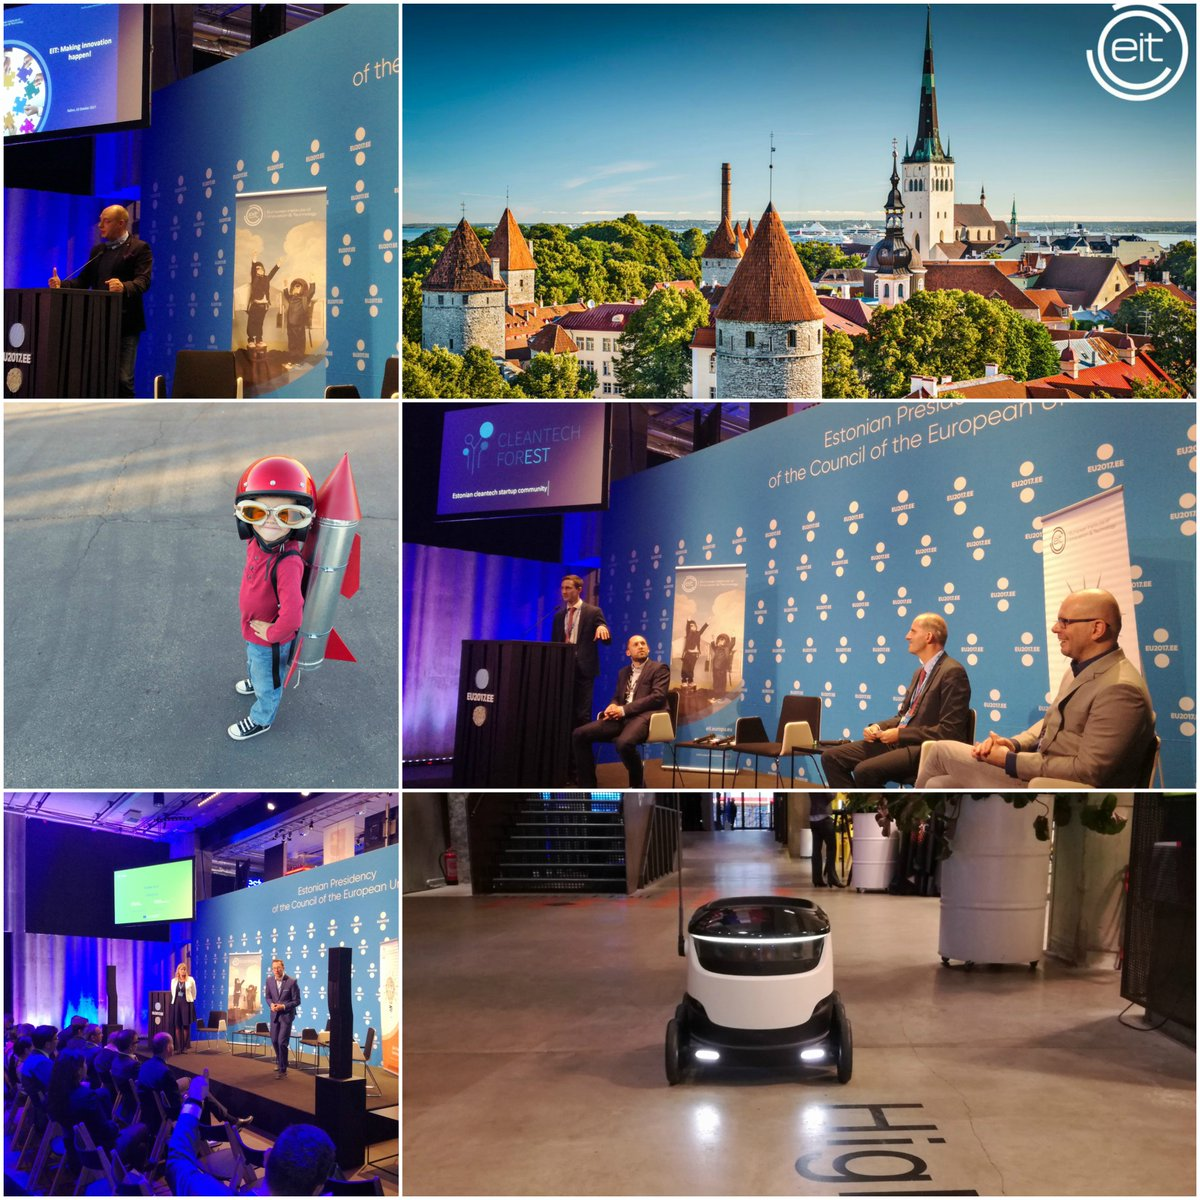 Thanks #Estonia! Powering EITday #Tallin!We look forward 2more Estonian business education research joining #EITcommunity #Research4FutureEU <br>http://pic.twitter.com/B3hua59Vqq